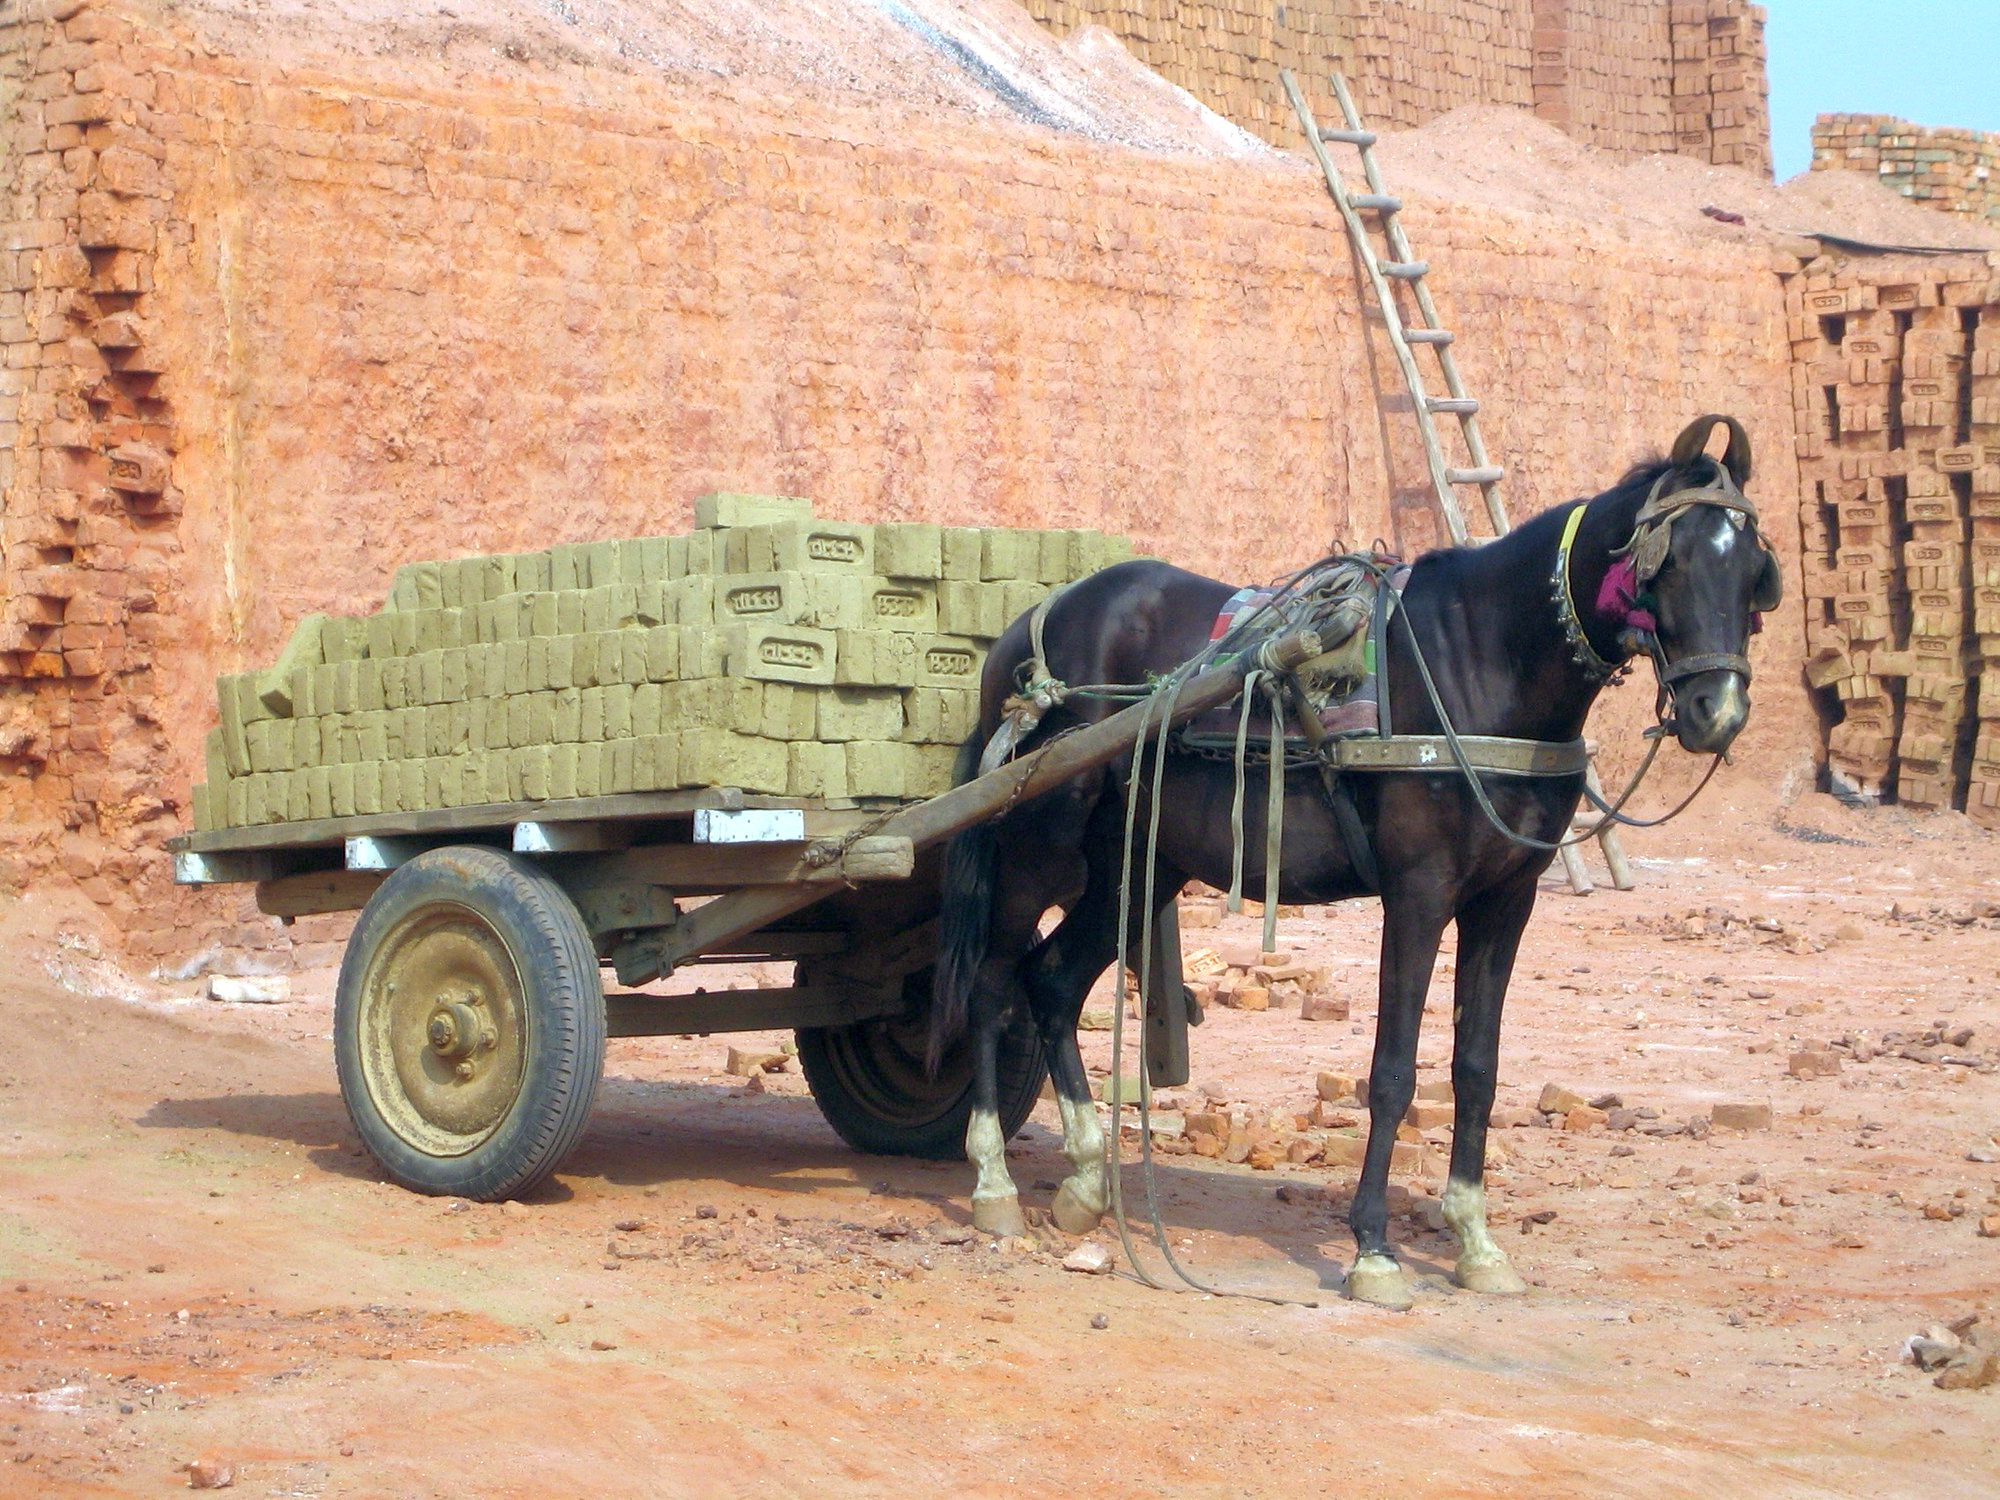 Brick kiln horse India  www.BrookeUSA.org.png